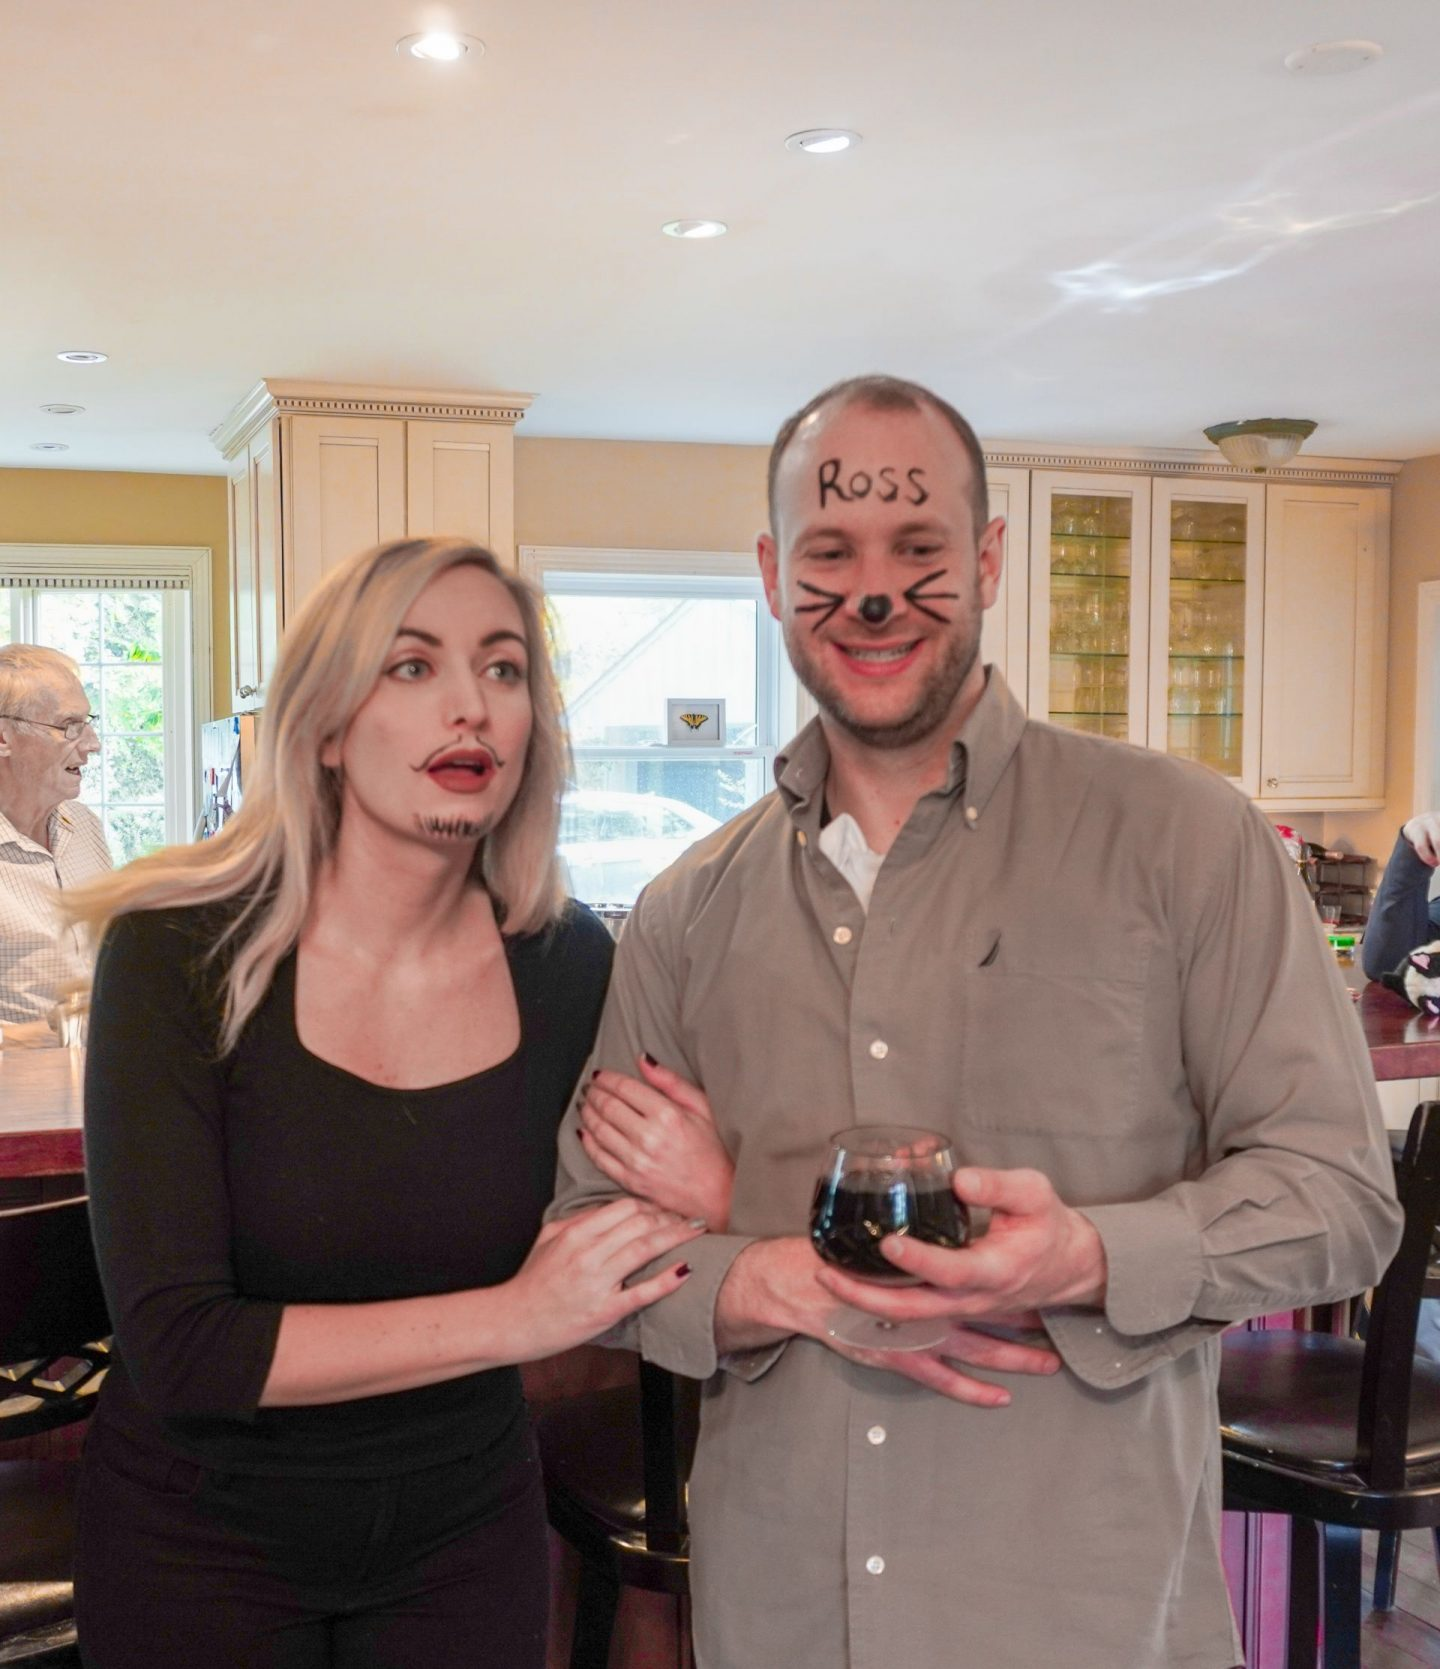 DIY halloween costume for couples Ross and Rachel from Friends Vegas wedding